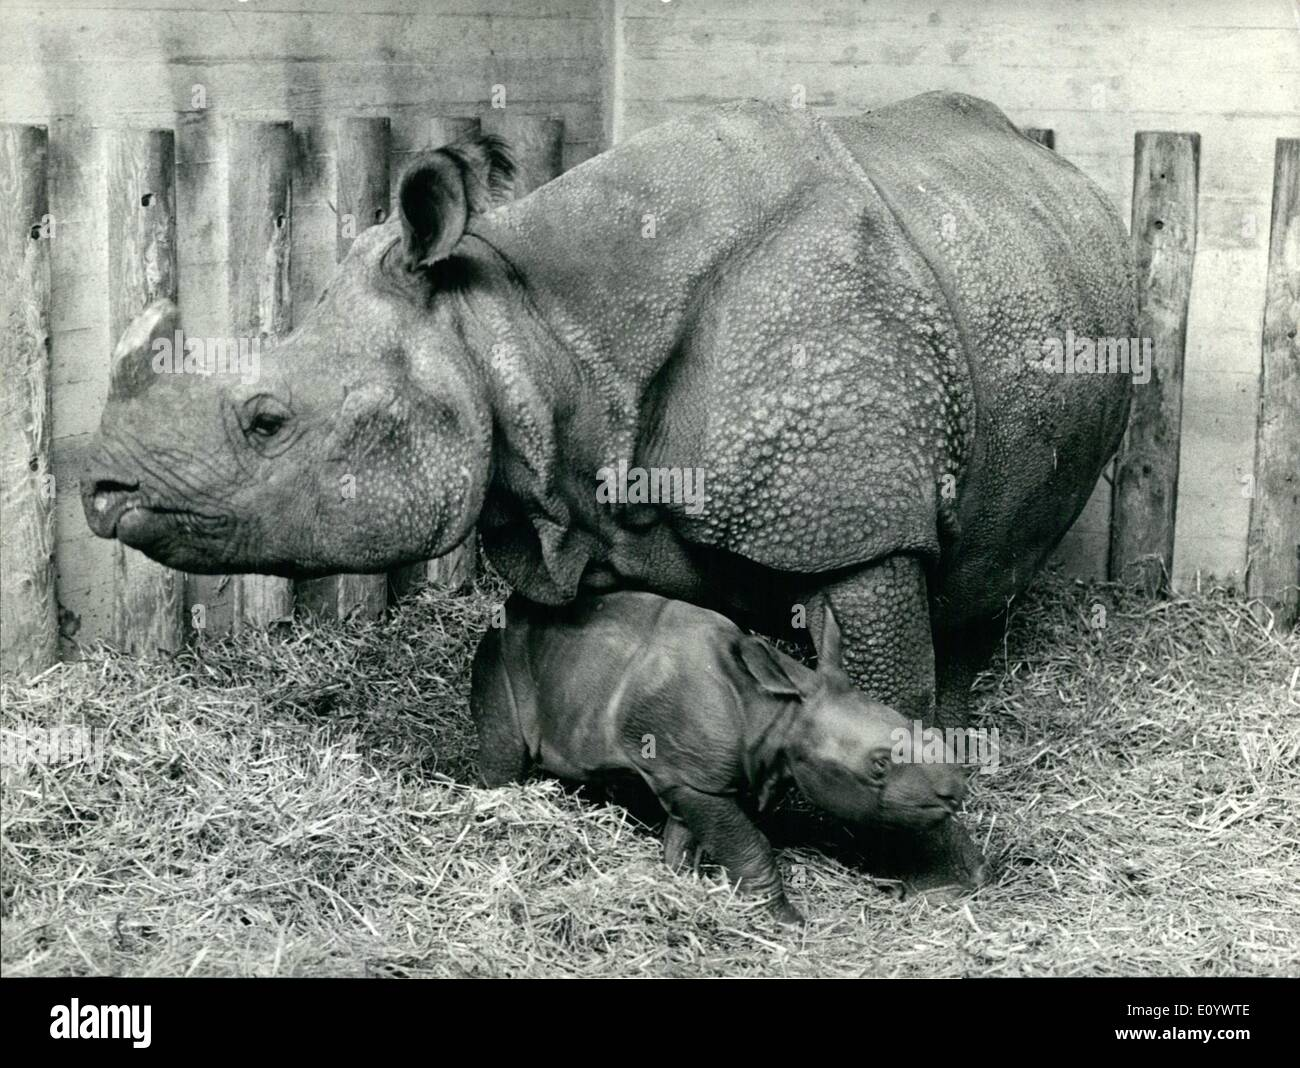 Aug. 08, 1971 - Happy event in the rhino enclosure in the Basle zoo.: Mother Moola, a lady rhino living in special quarters in the Basle Zoo, proudly presents her offspring a girl rhino born at 22.18 hours last Wednesday. Mother Molla has been born in Basle too (in 1958, to be precise). The baby rhino has not yet got a name. Its the eleventh baby rhinoceros born in Basle Zoo. - Stock Image